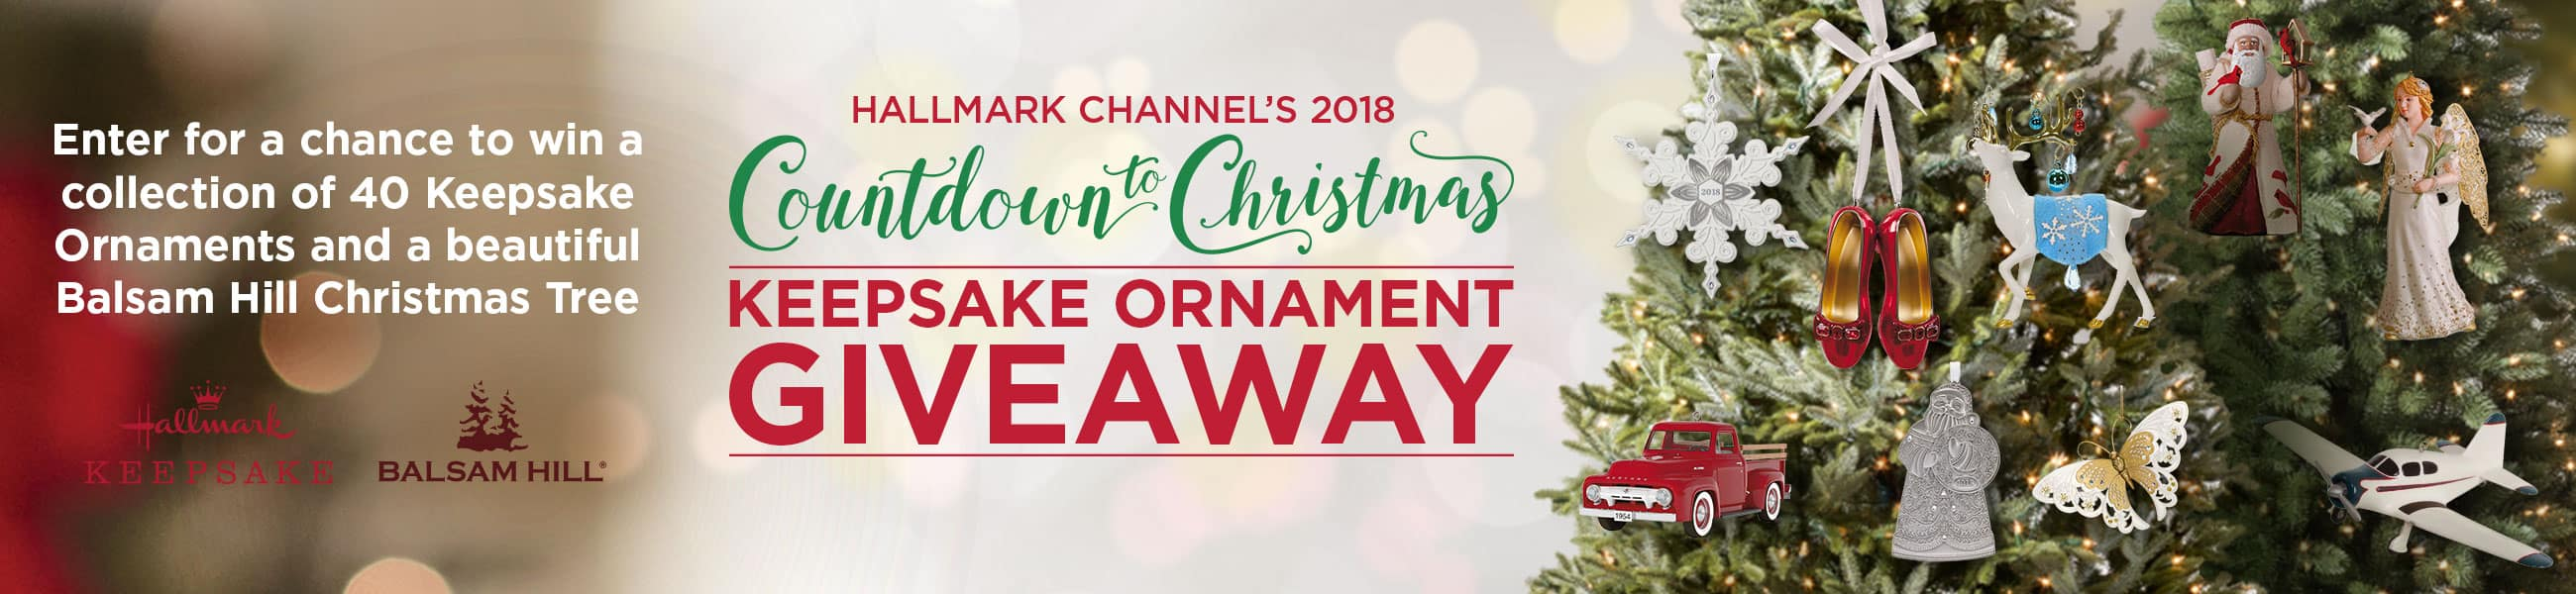 Countdown to Christmas Keepsake Ornament Giveaway